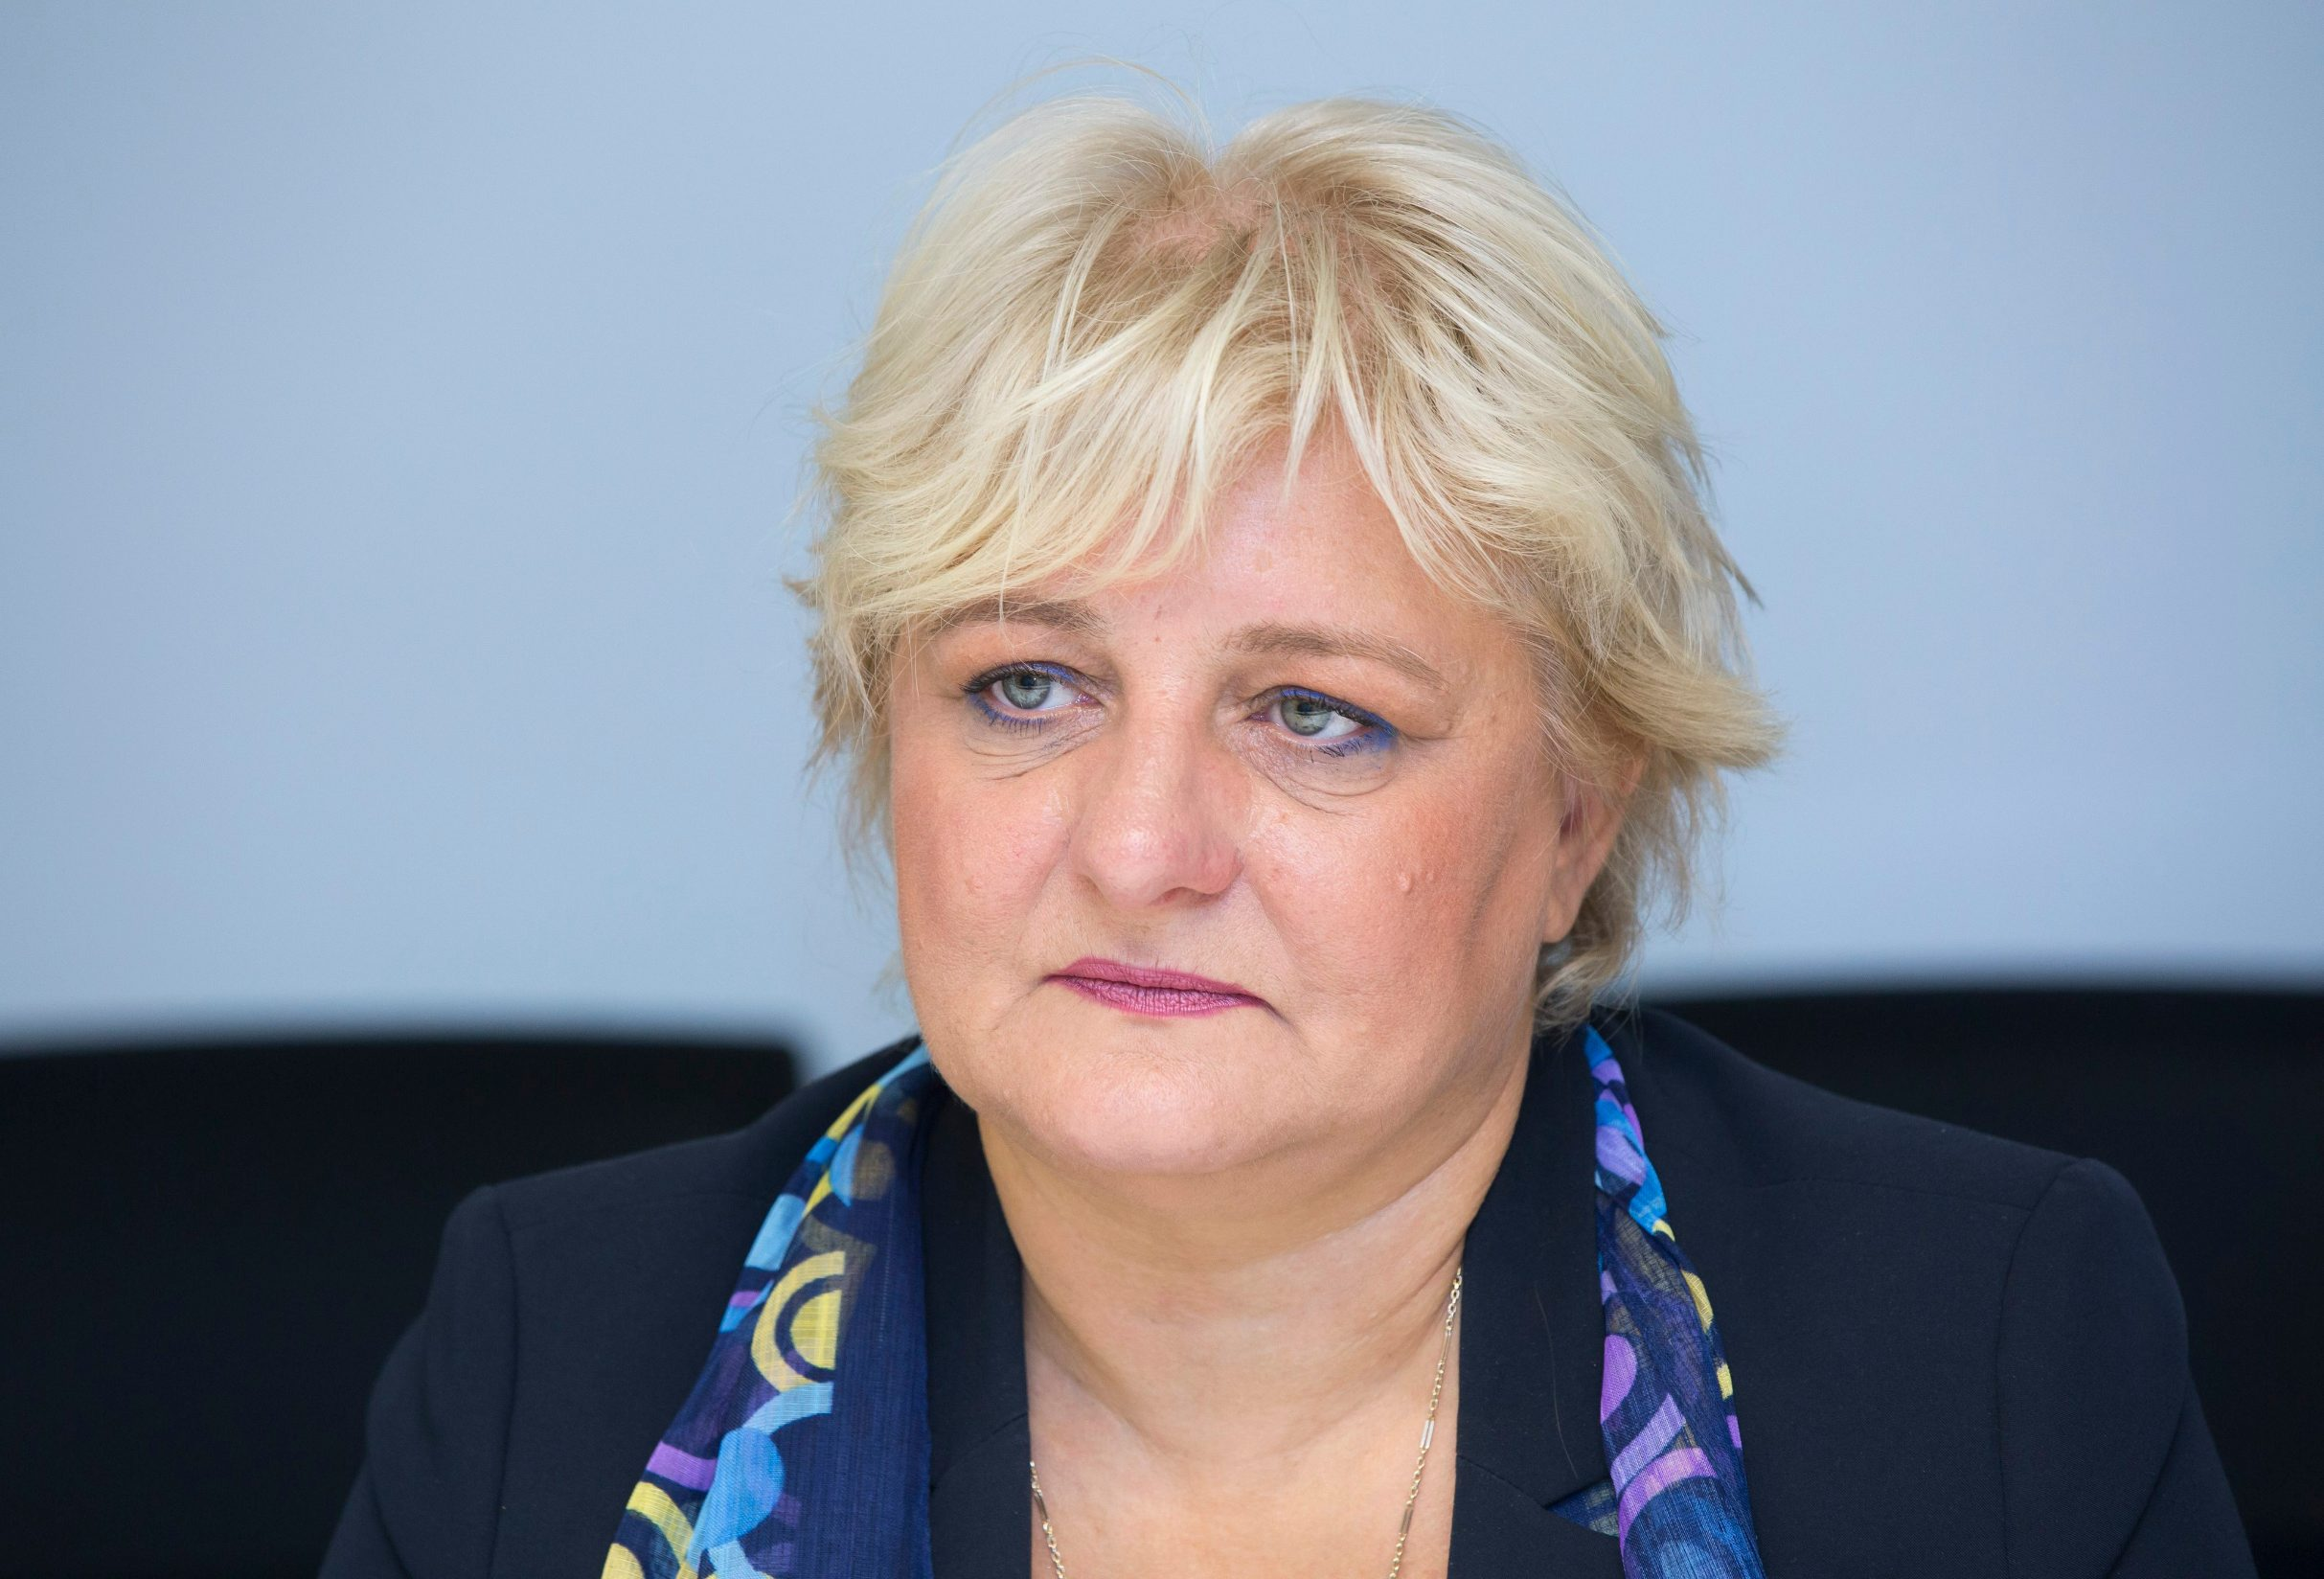 European Maritime Safety Agency director Maja Markovcic Kostelac